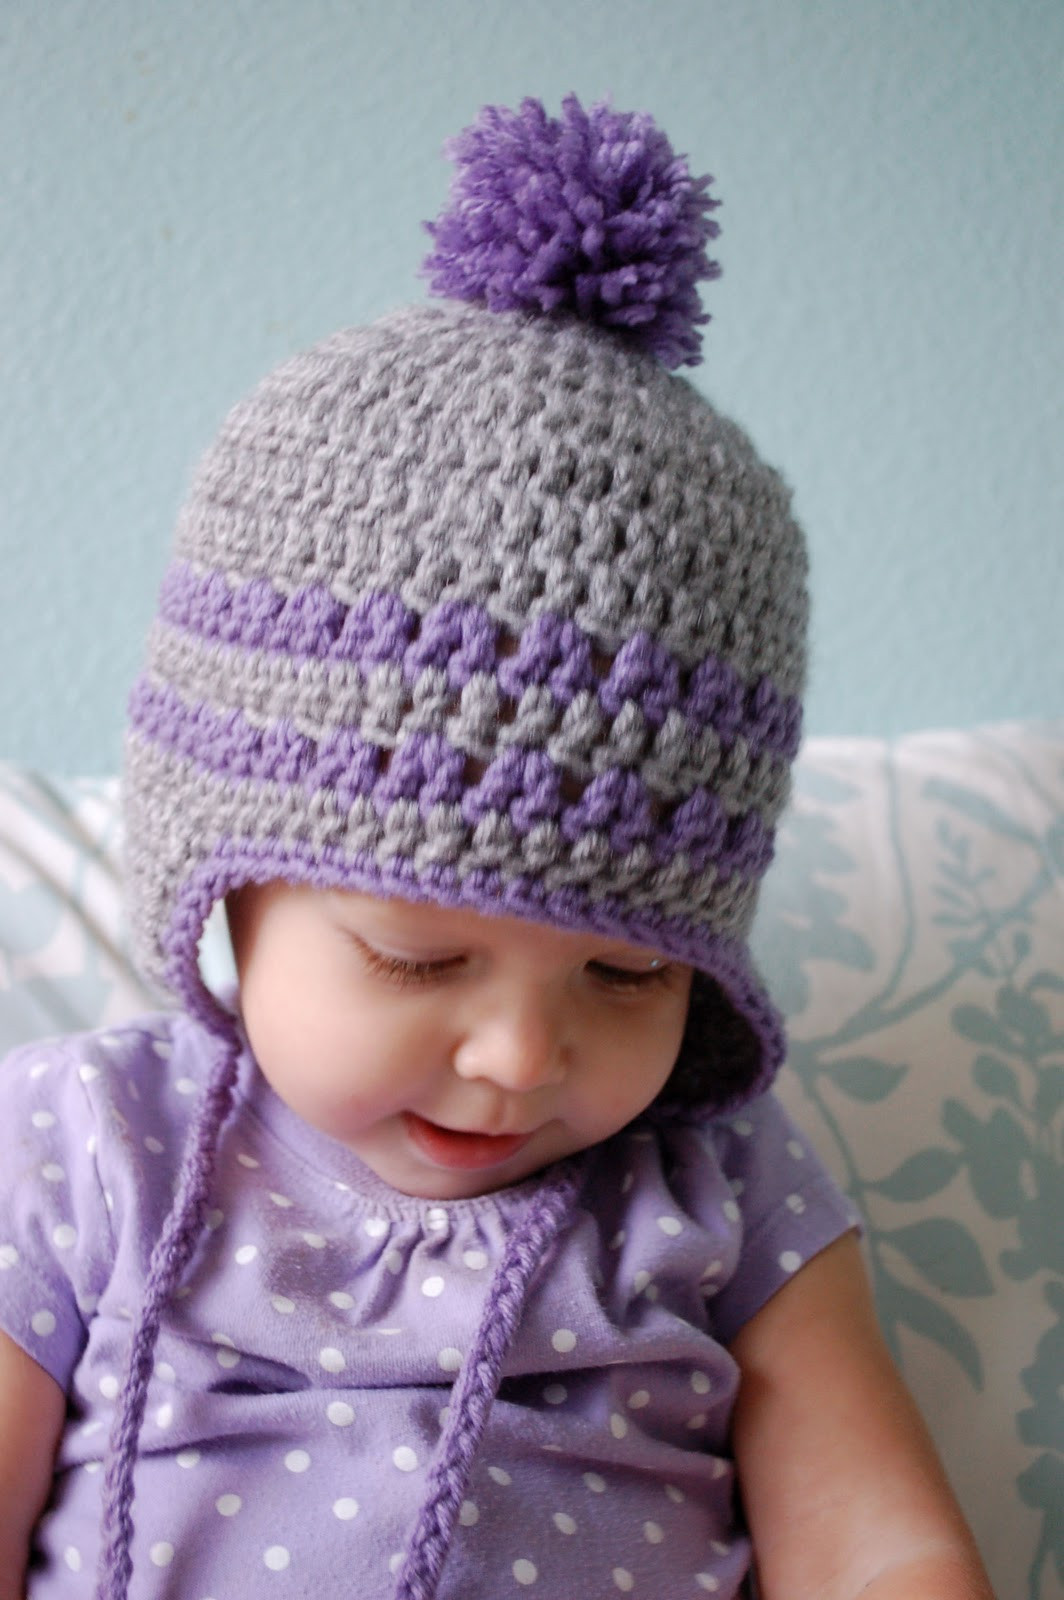 Unique Free Crochet Patterns for Baby Hats with Ear Flaps Baby Hat with Ear Flaps Of Perfect 41 Pics Baby Hat with Ear Flaps